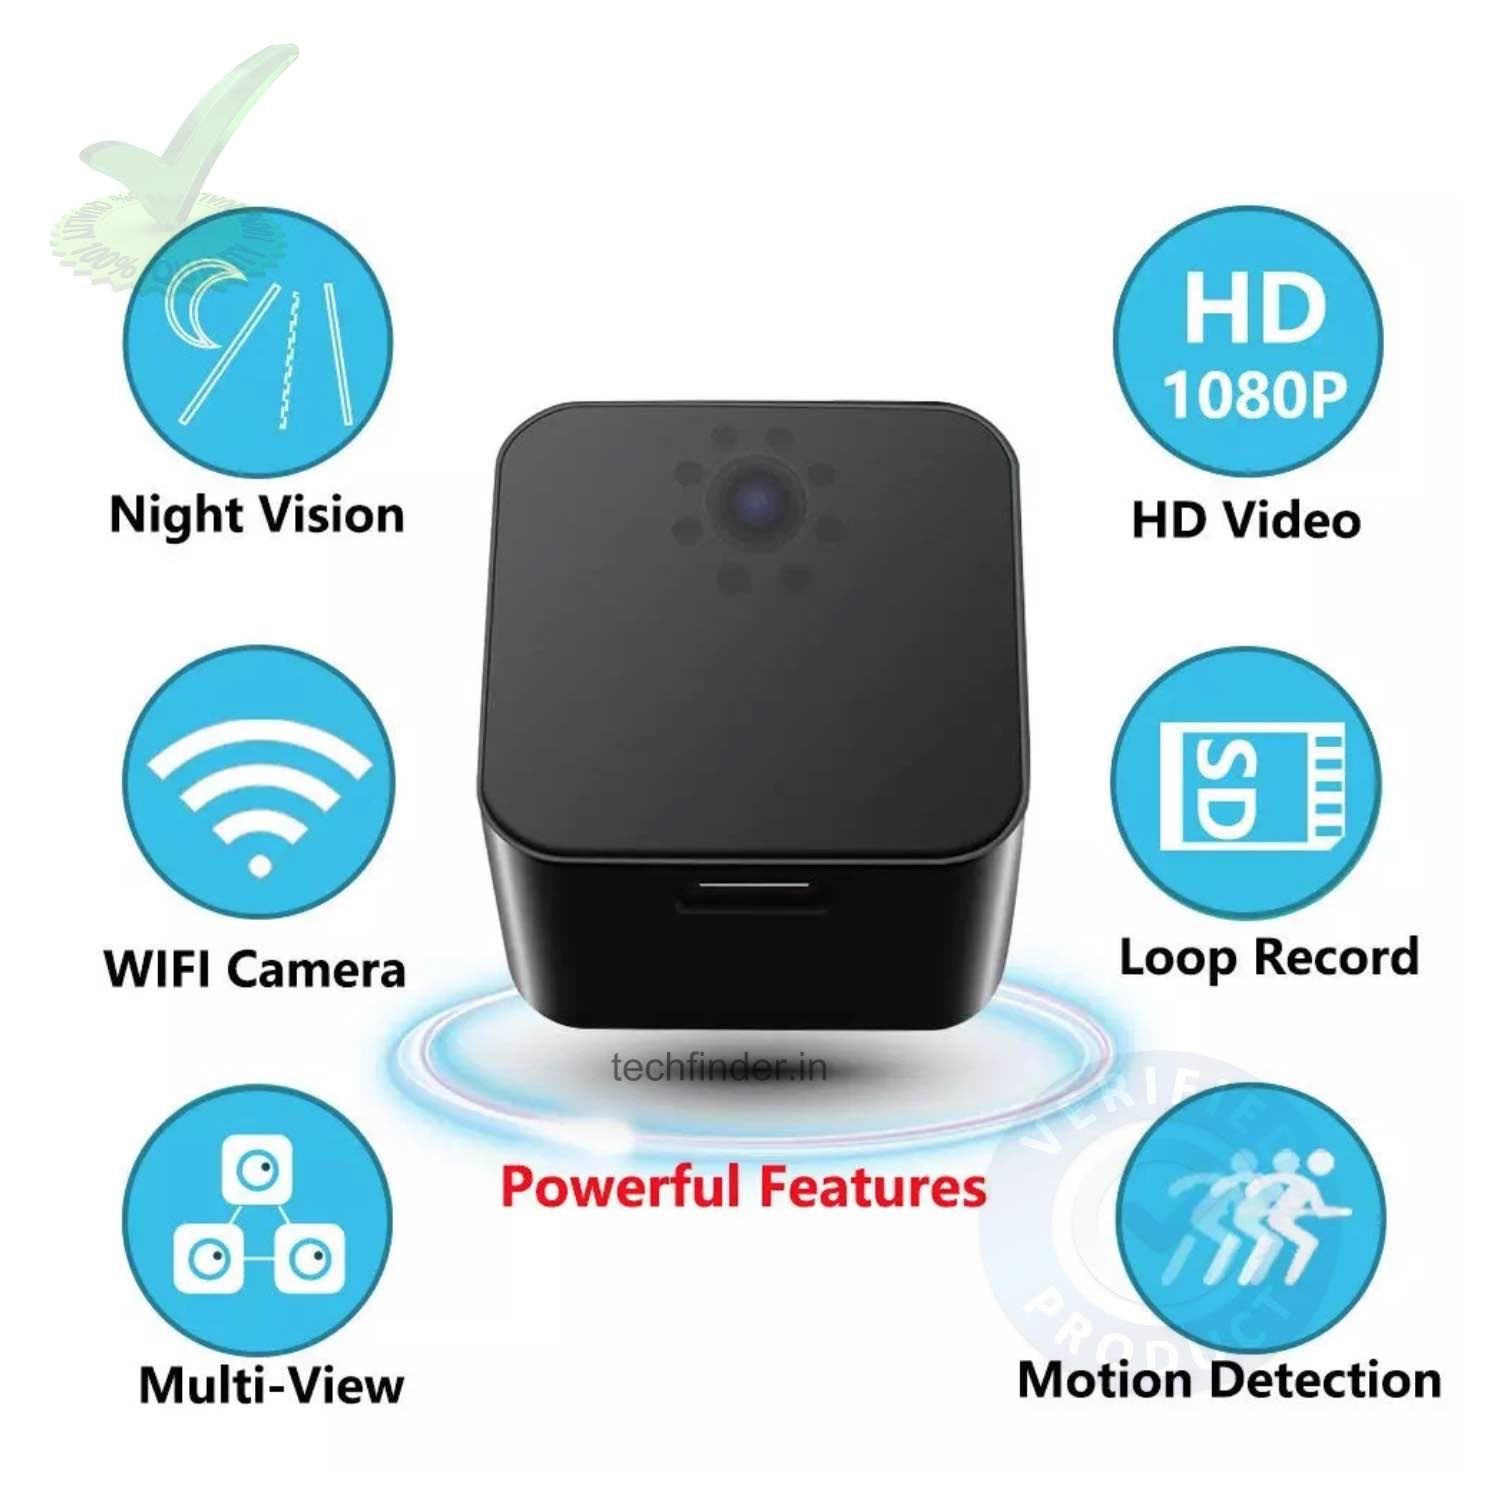 4k Wi-Fi Hidden Spy Camera with Recorder in Charging Adaptor